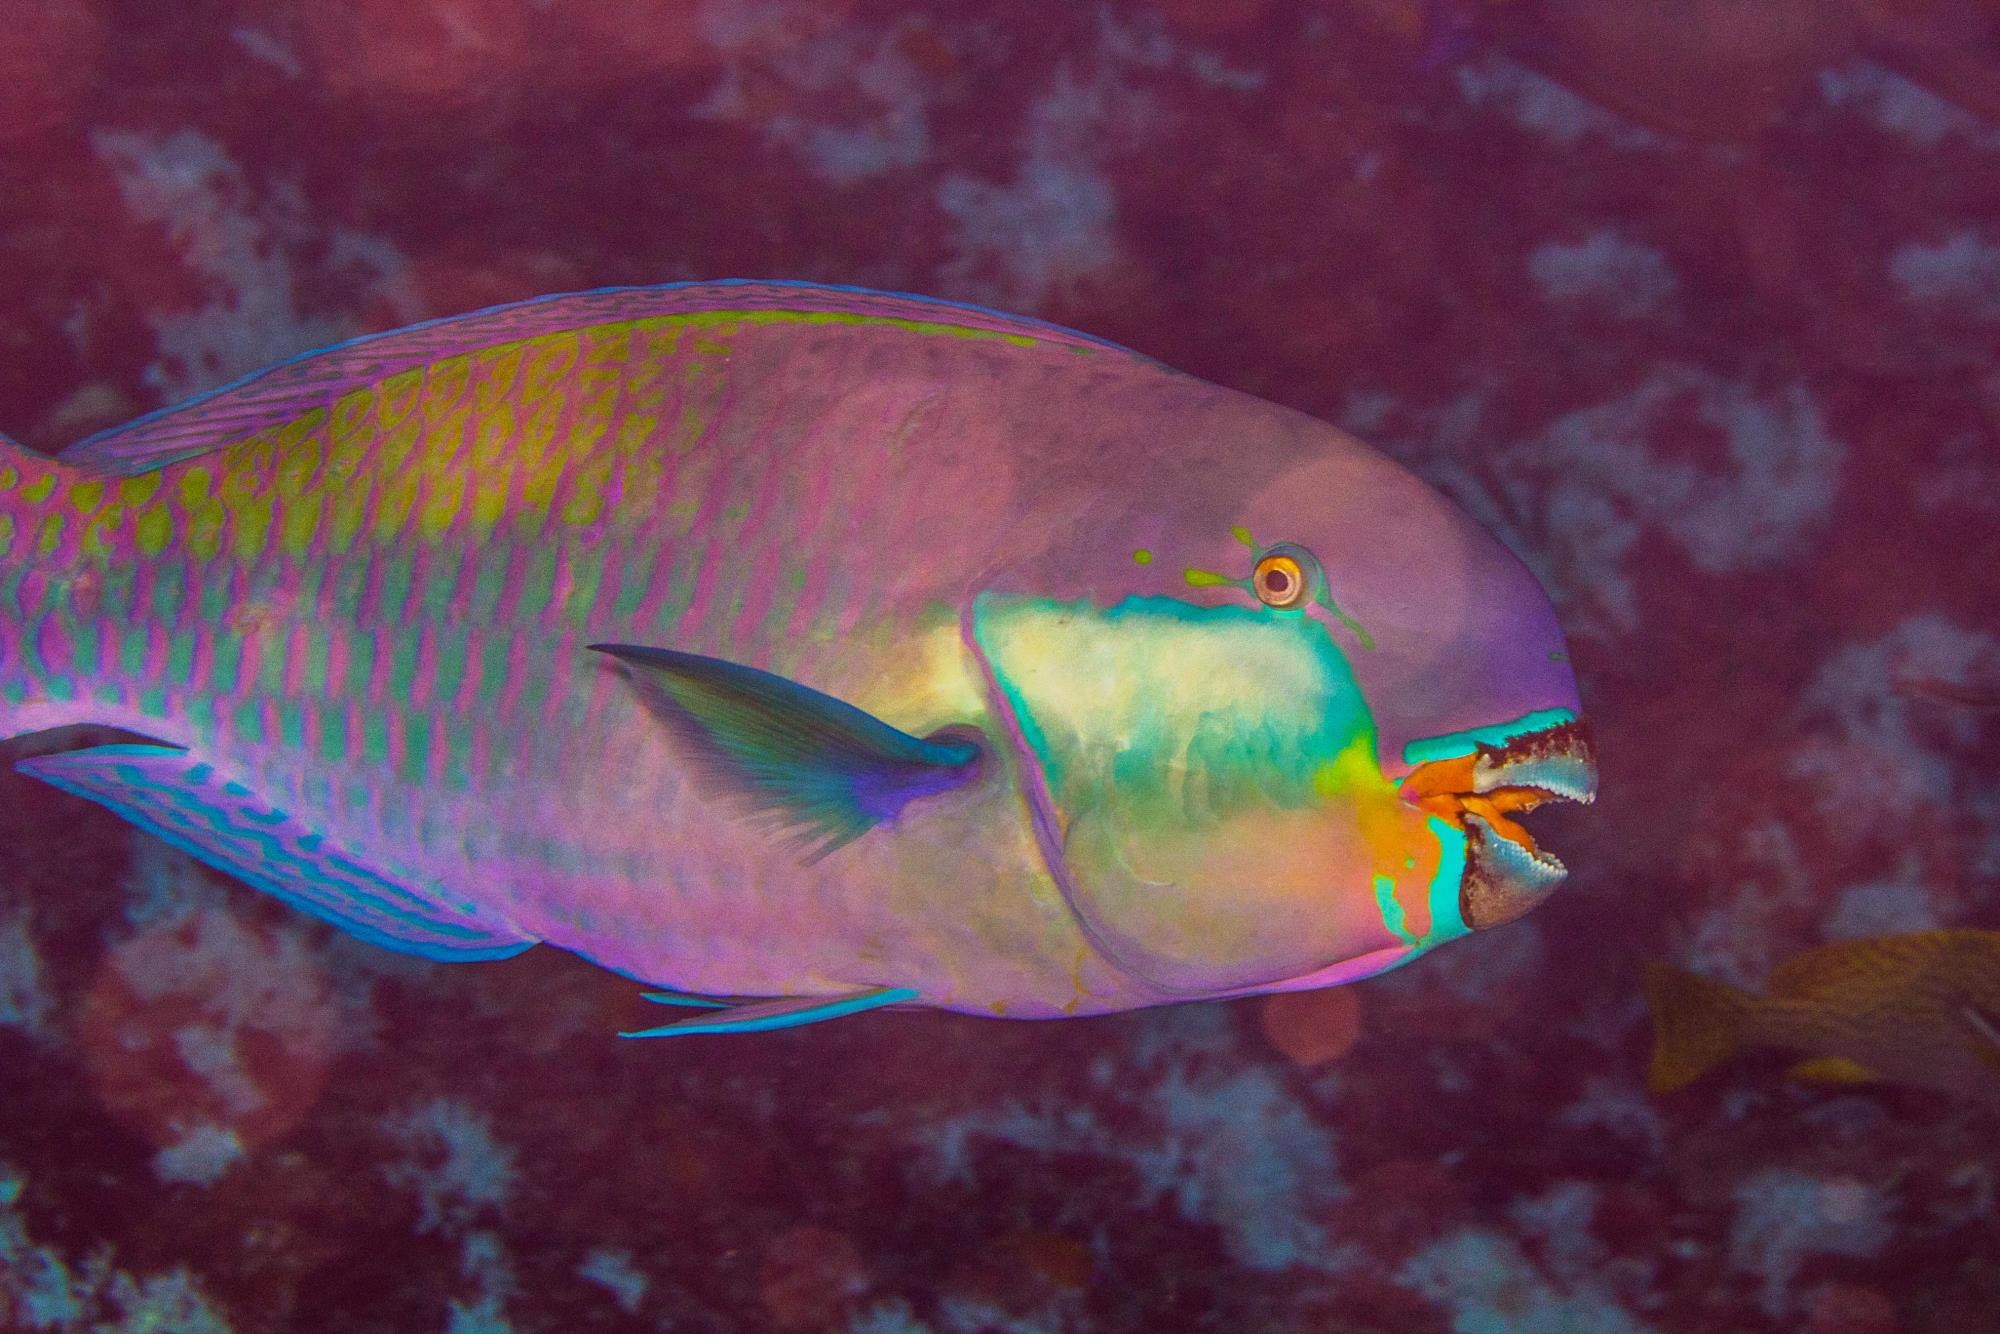 Terminal Phase male Steephead parrotfish (Chlorurus strongylocephalus) also known as the Roundhead Parrotfish